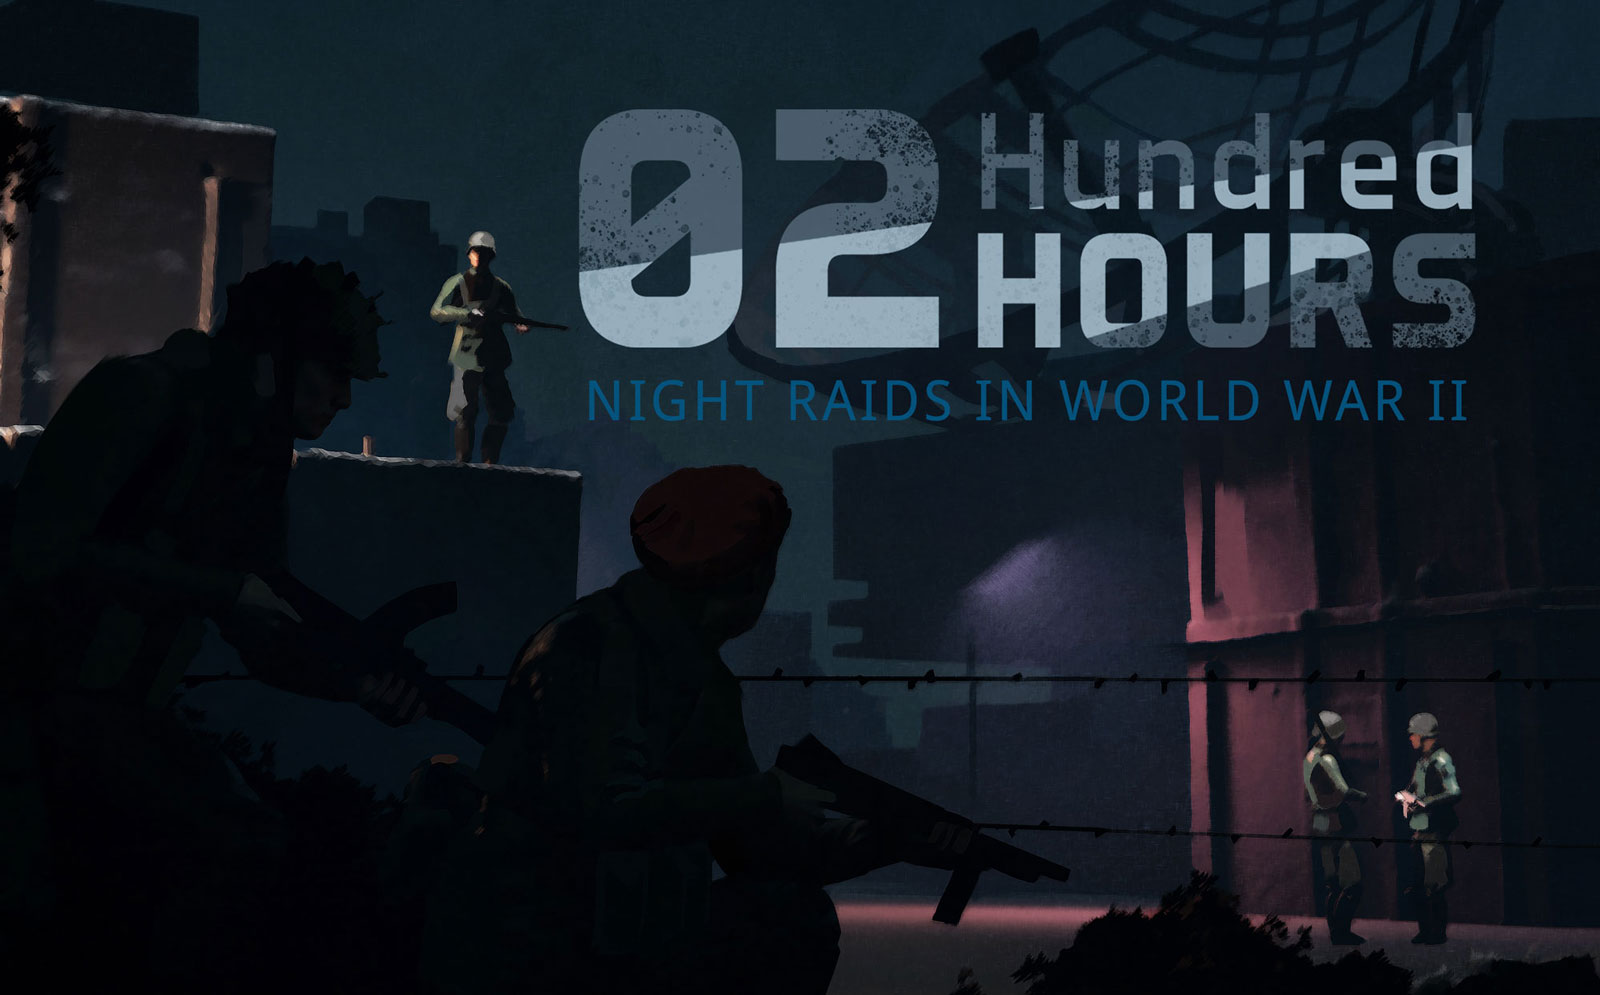 02 Hundred Hours - Grey For Now Games